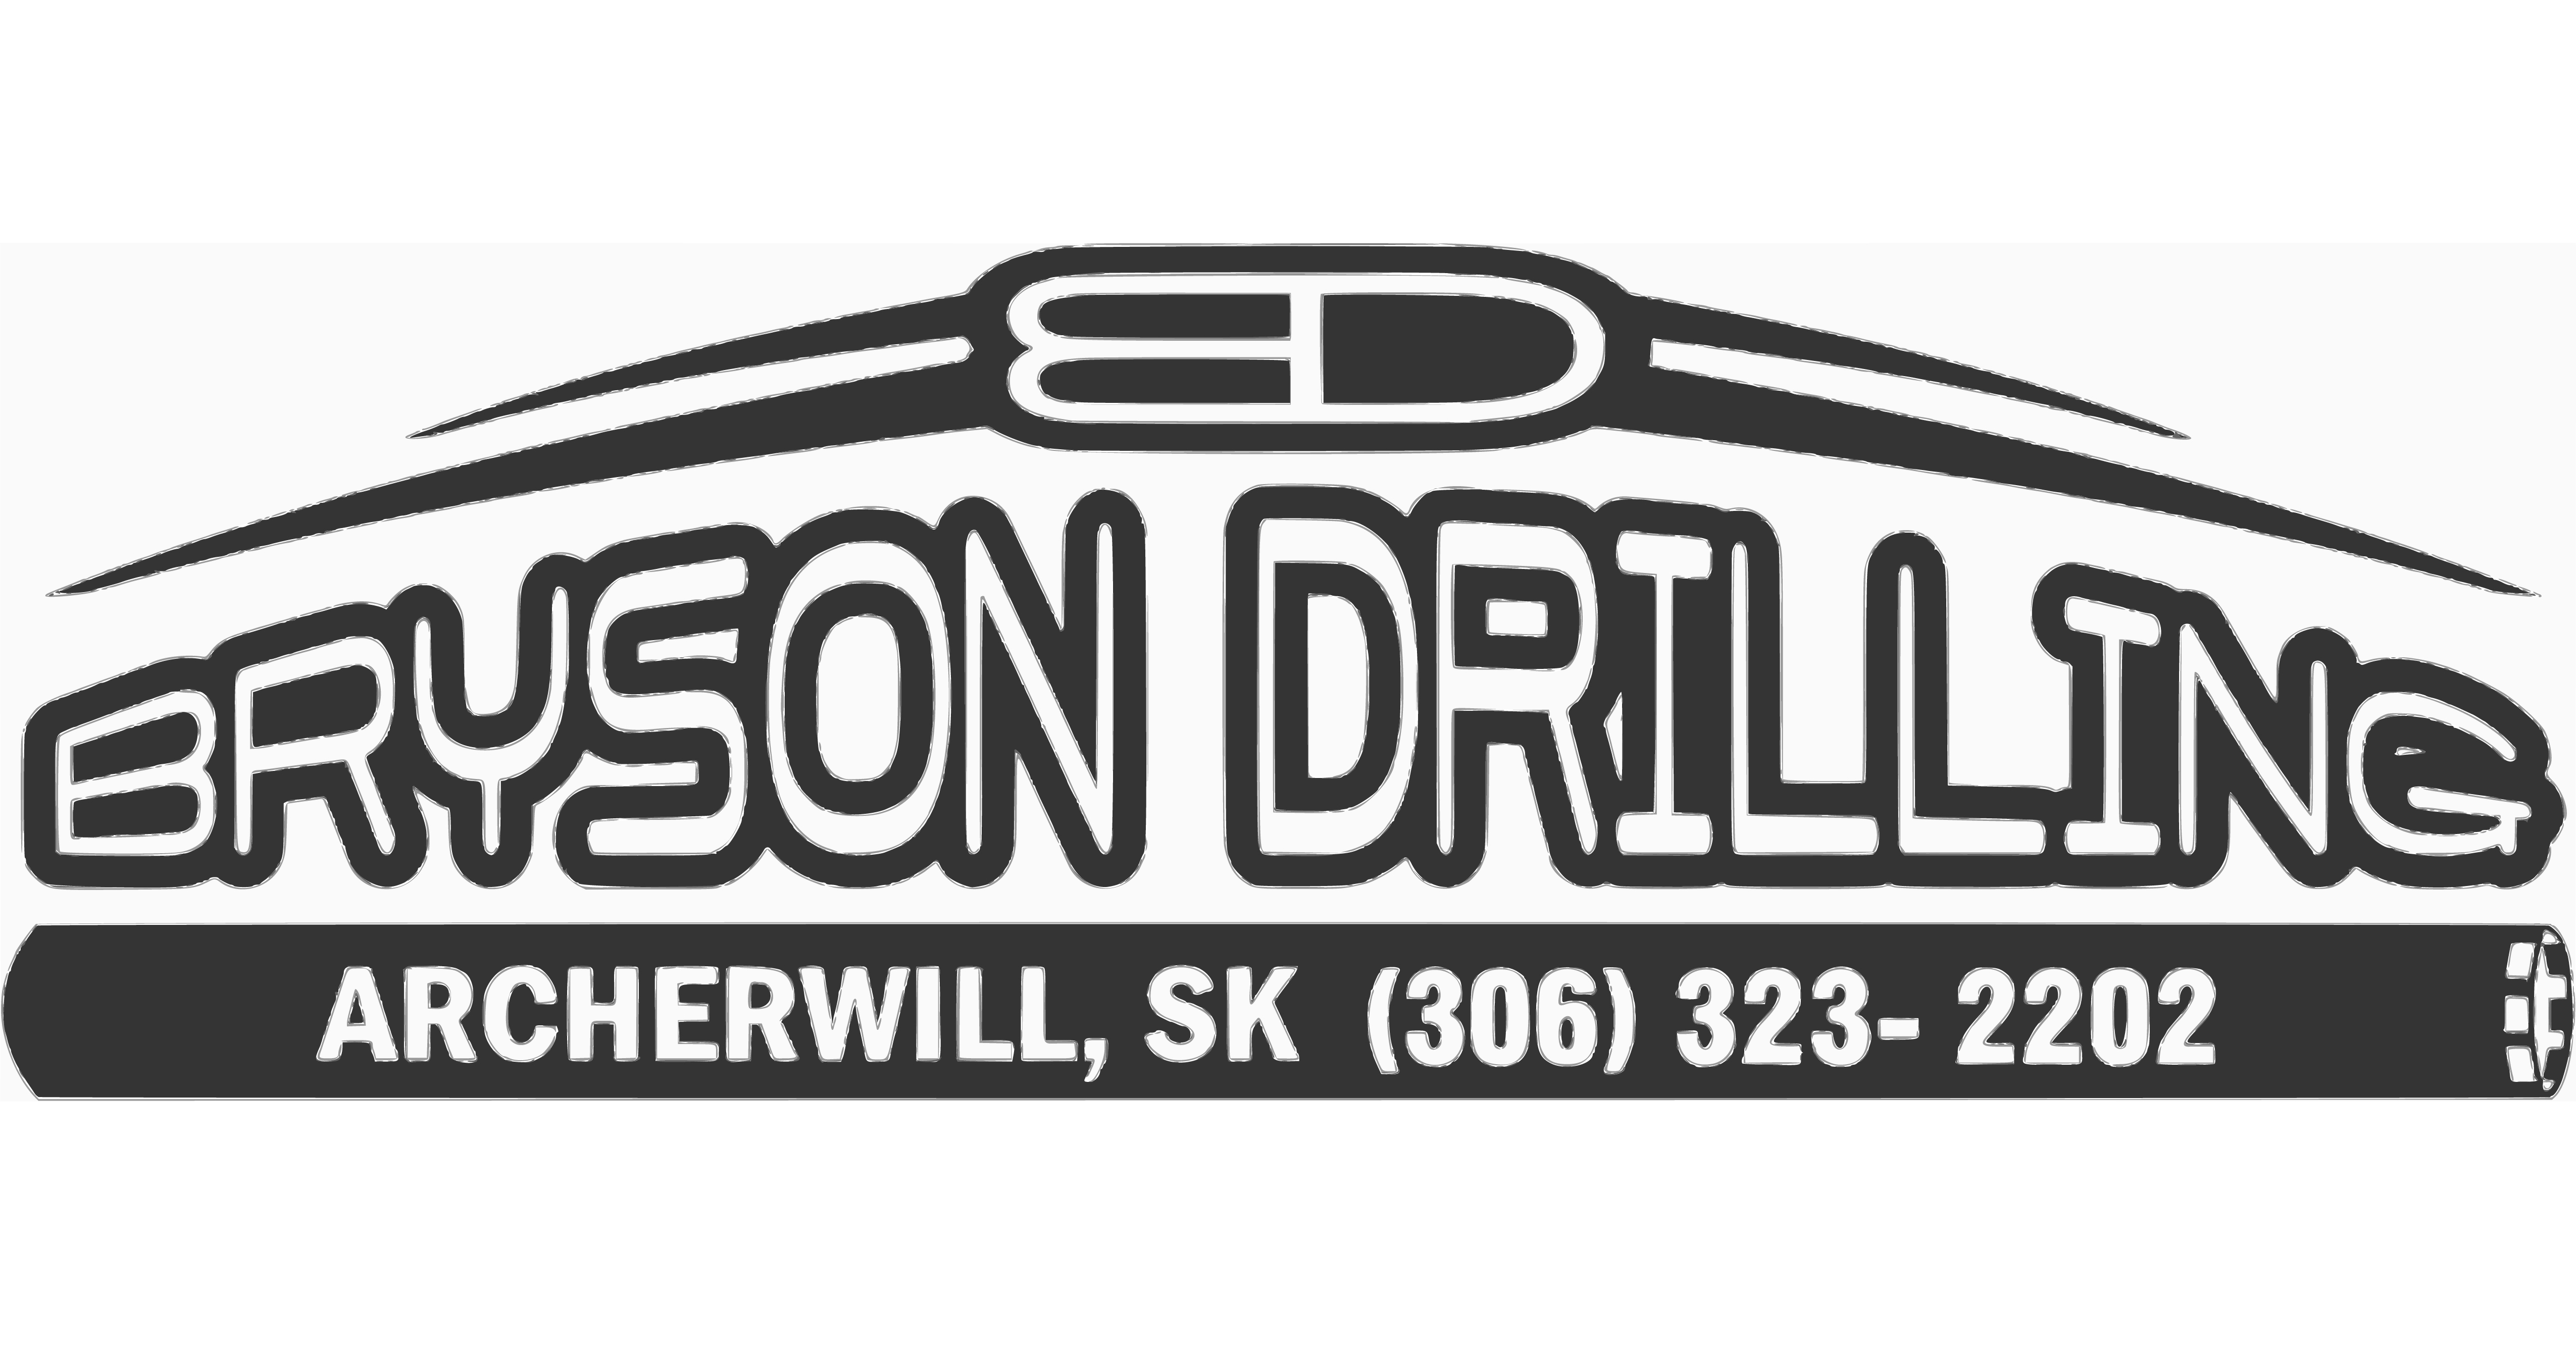 Bryson Drilling Limited